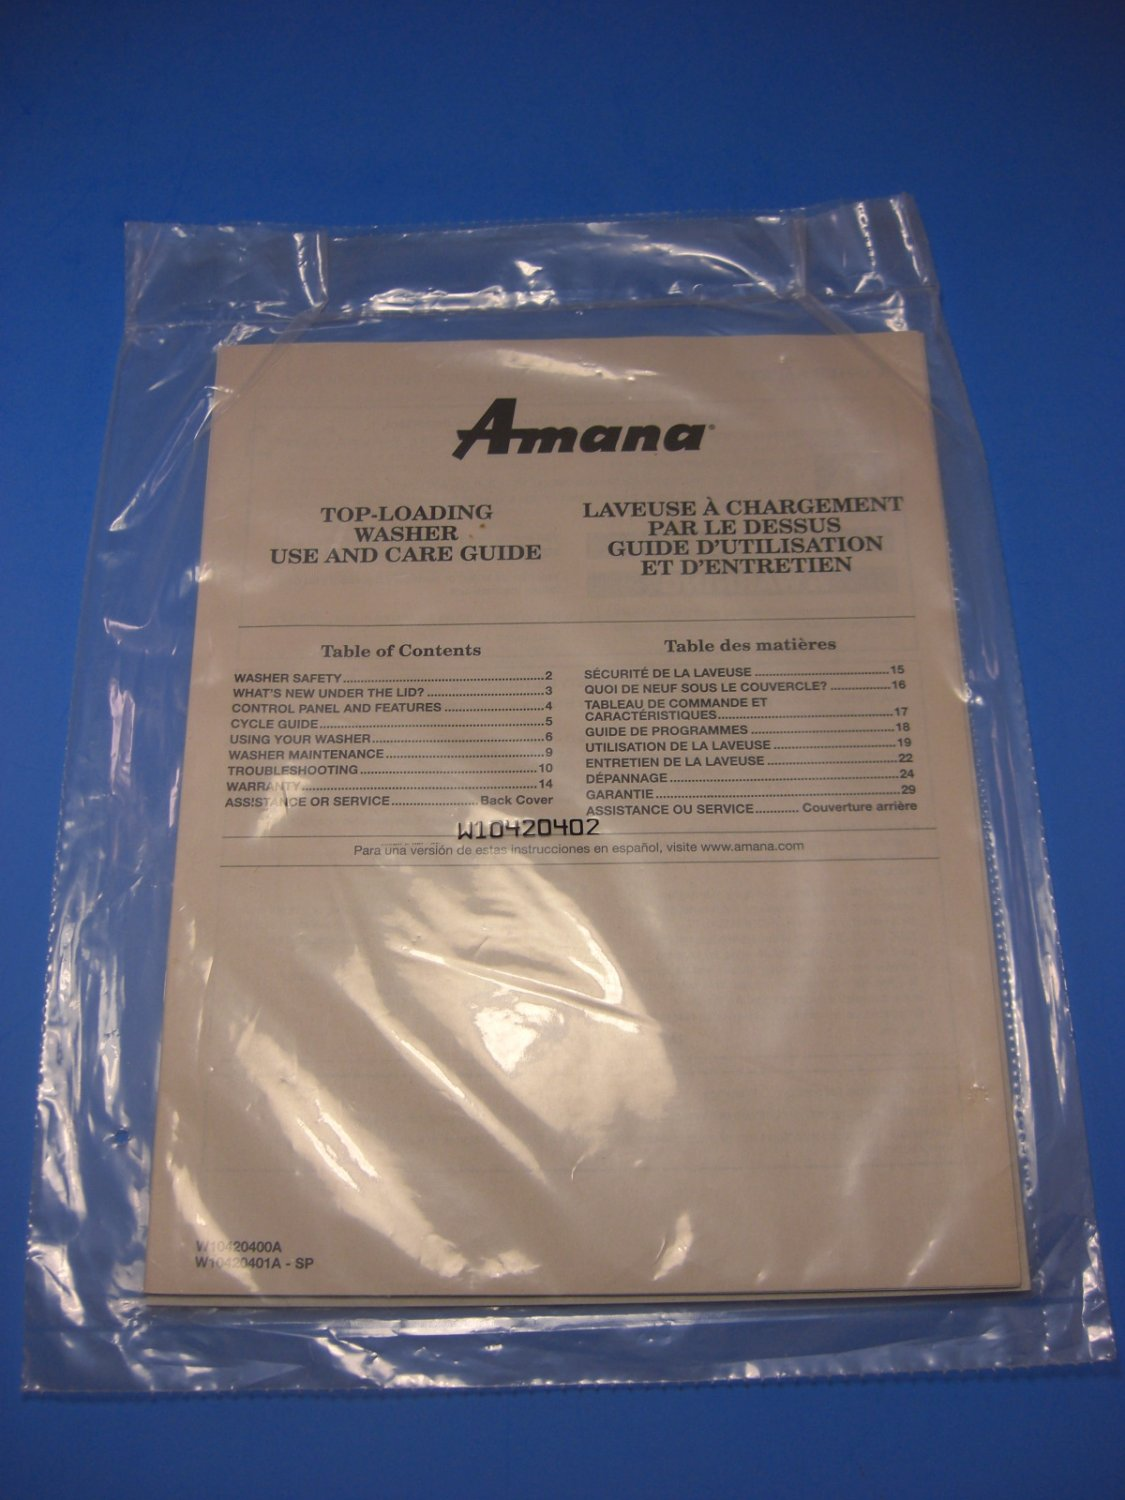 Amana Top-Loading Washer Use & Care Guide Instruction Manual